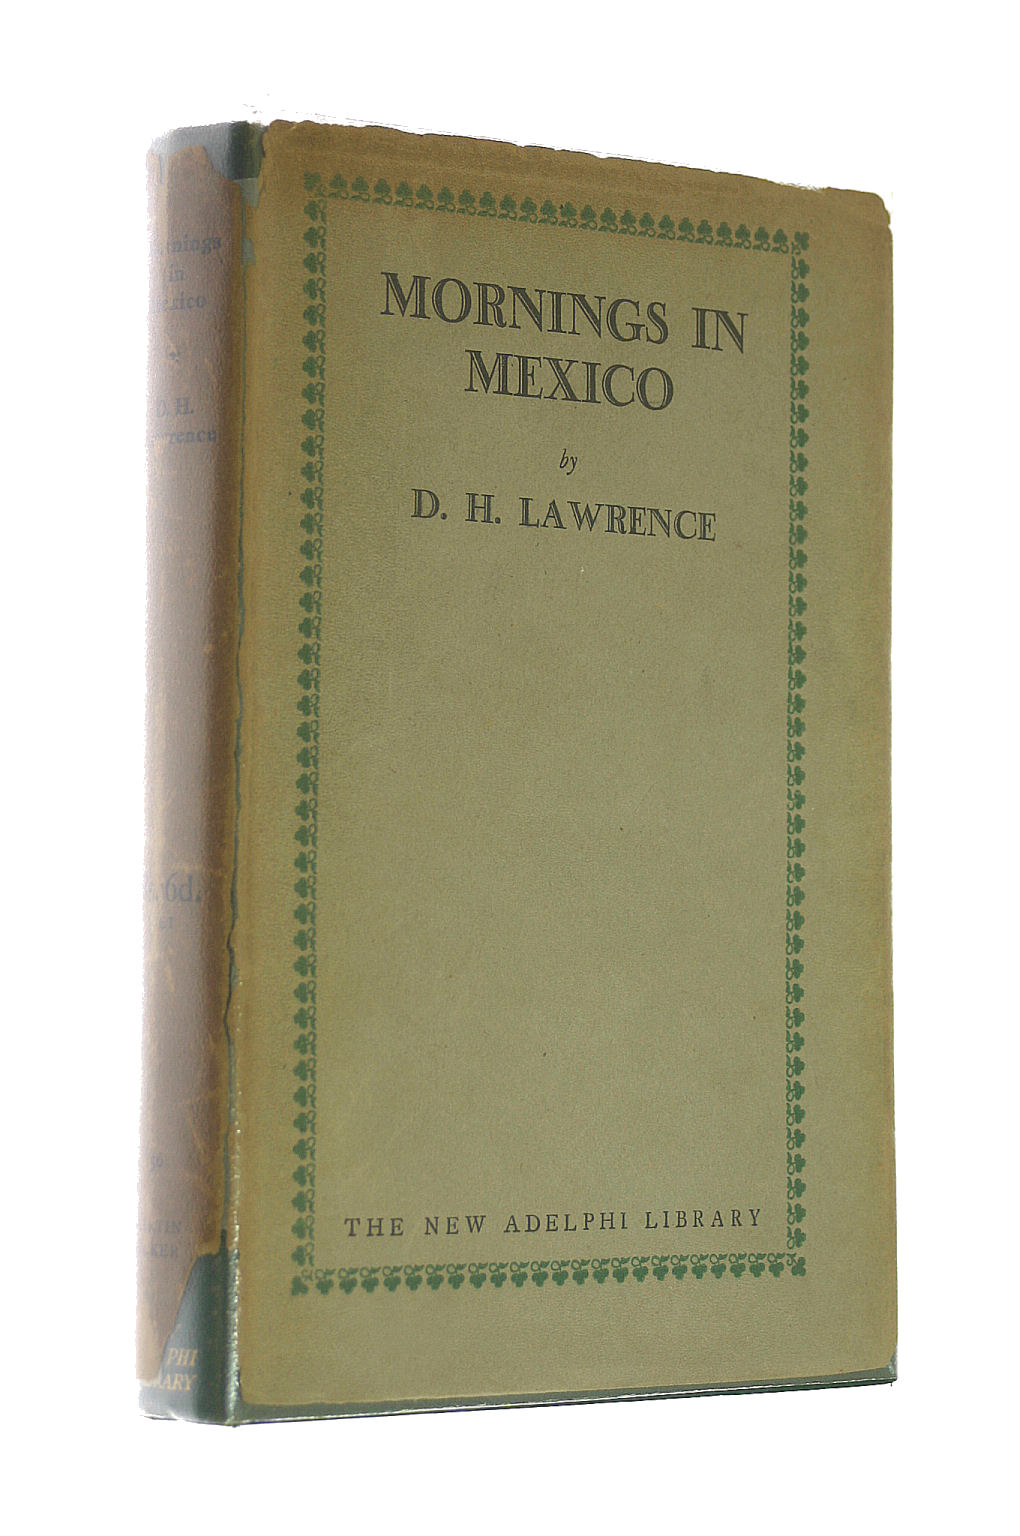 Image for Mornings in Mexico, (New Adelphi library)